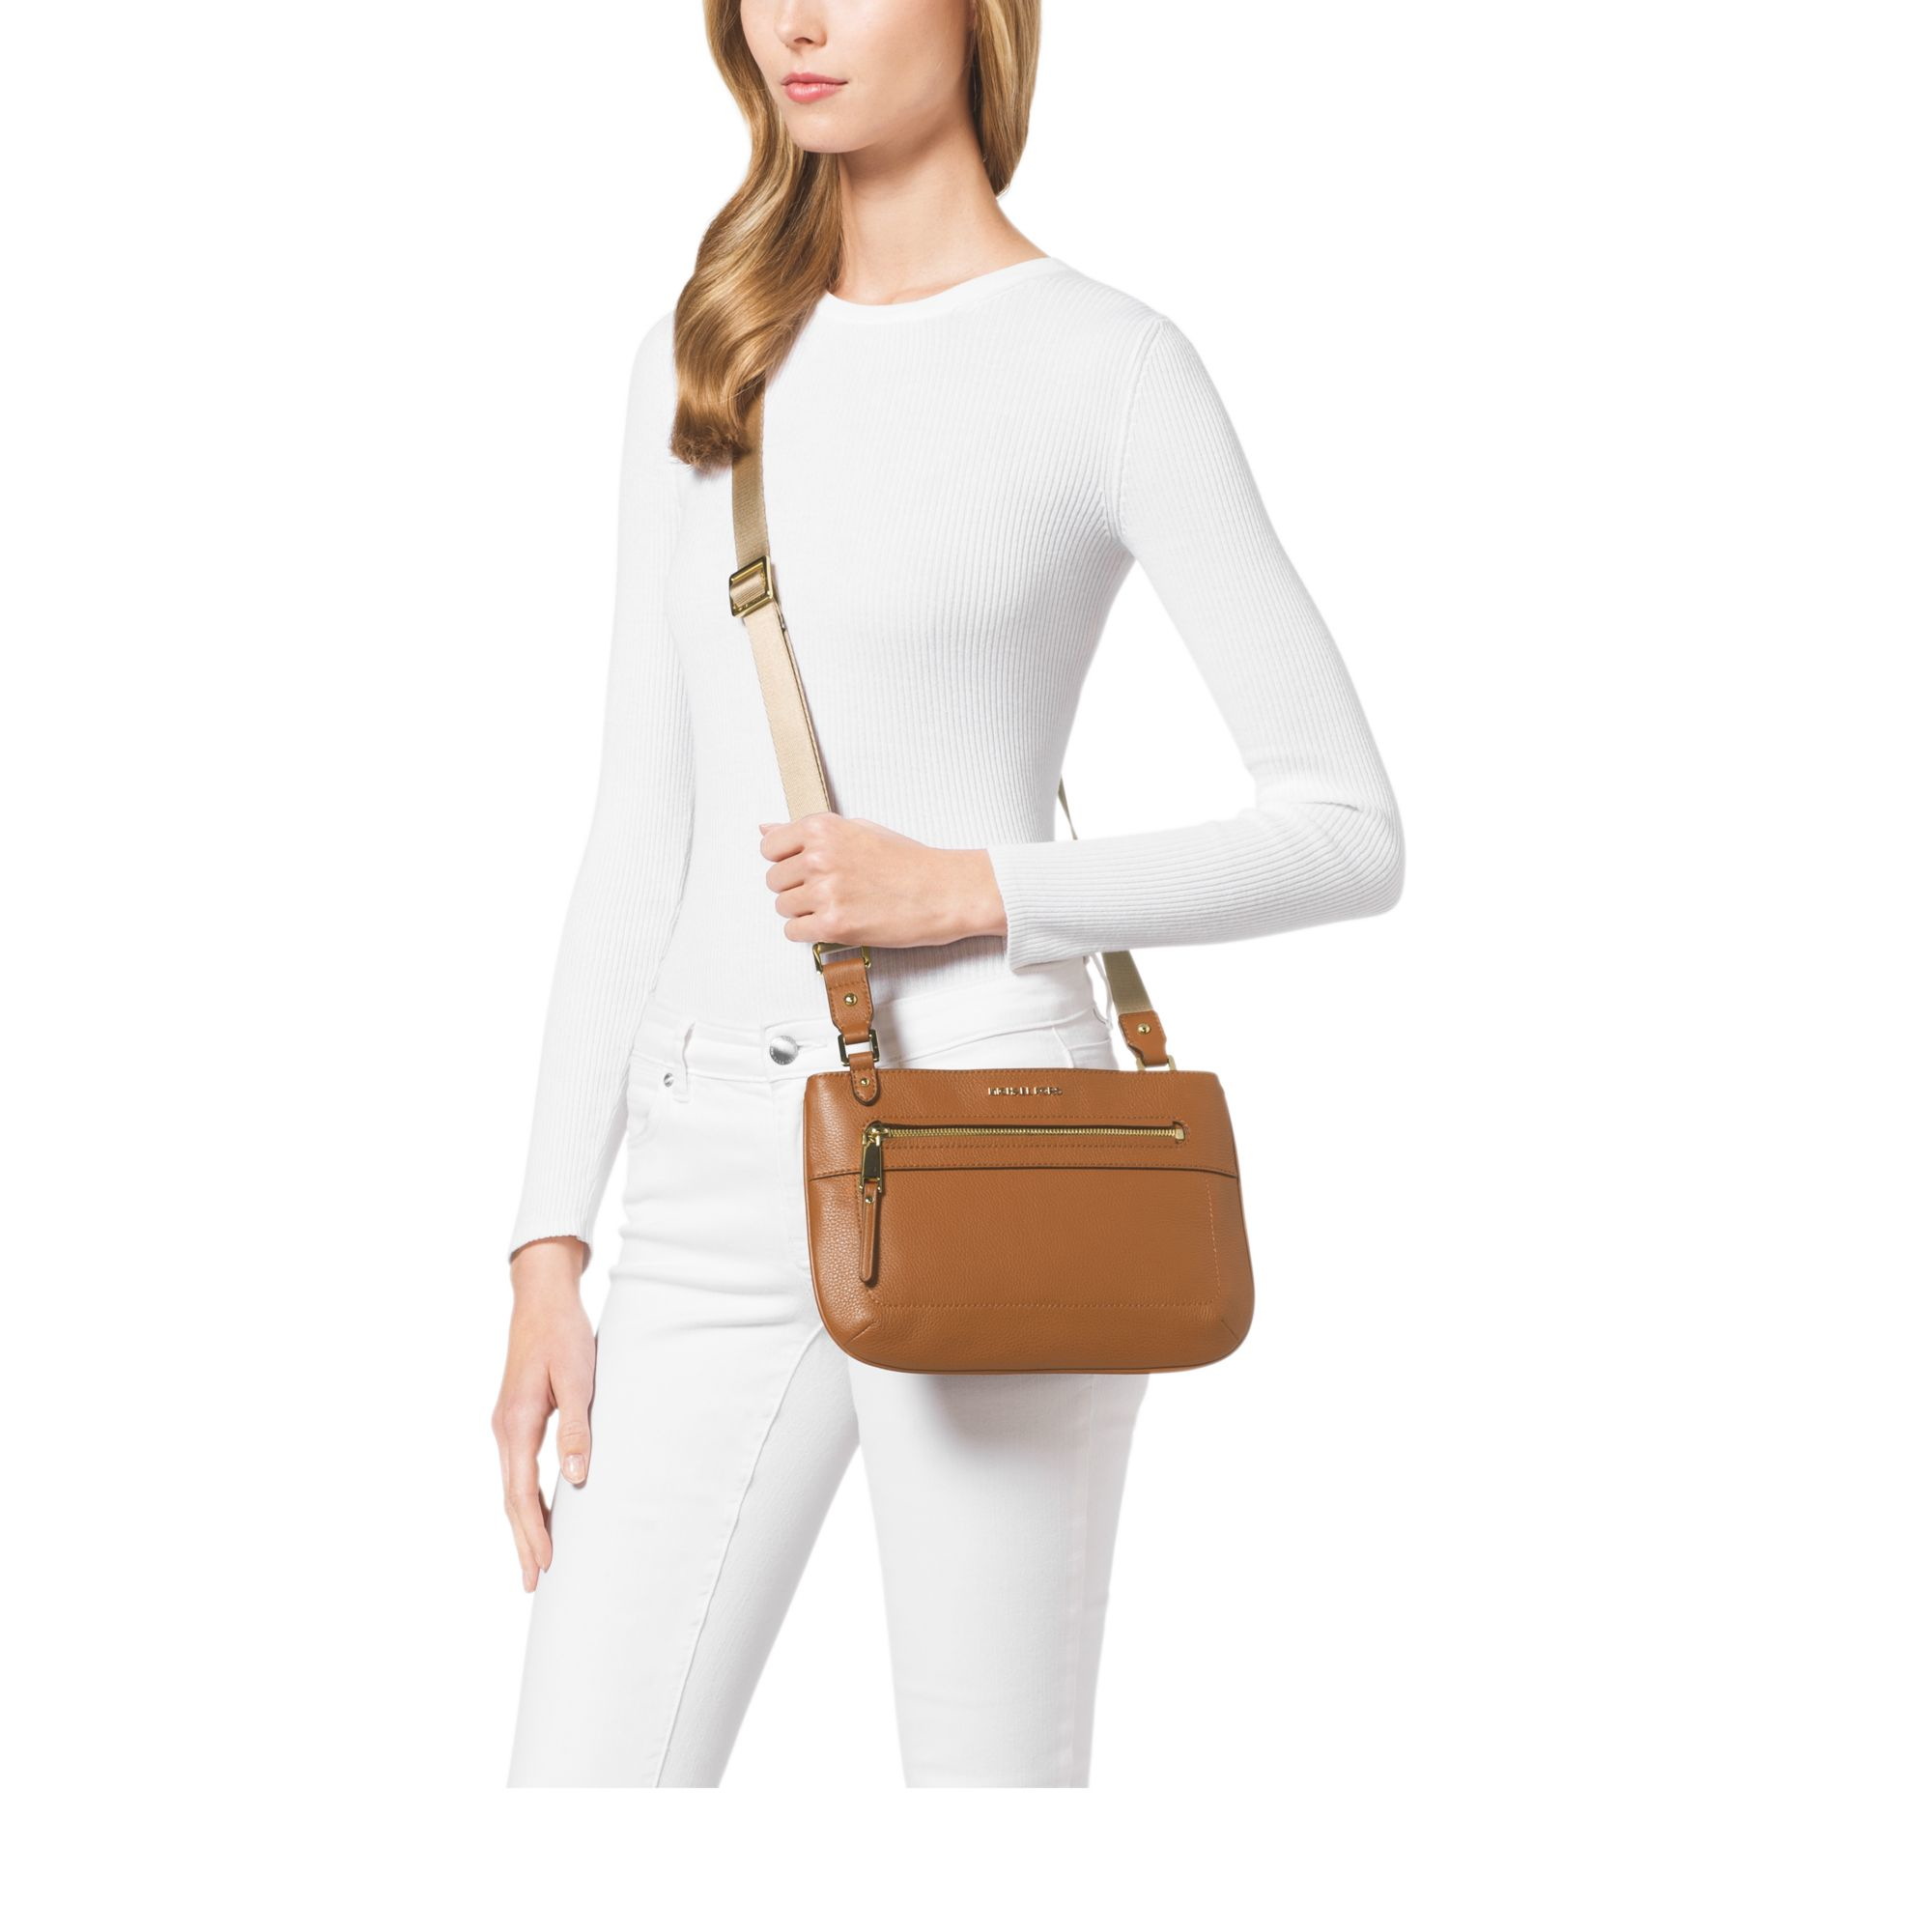 bf5ad98484ae Lyst - Michael Kors Jet Set Large Leather Crossbody in Brown